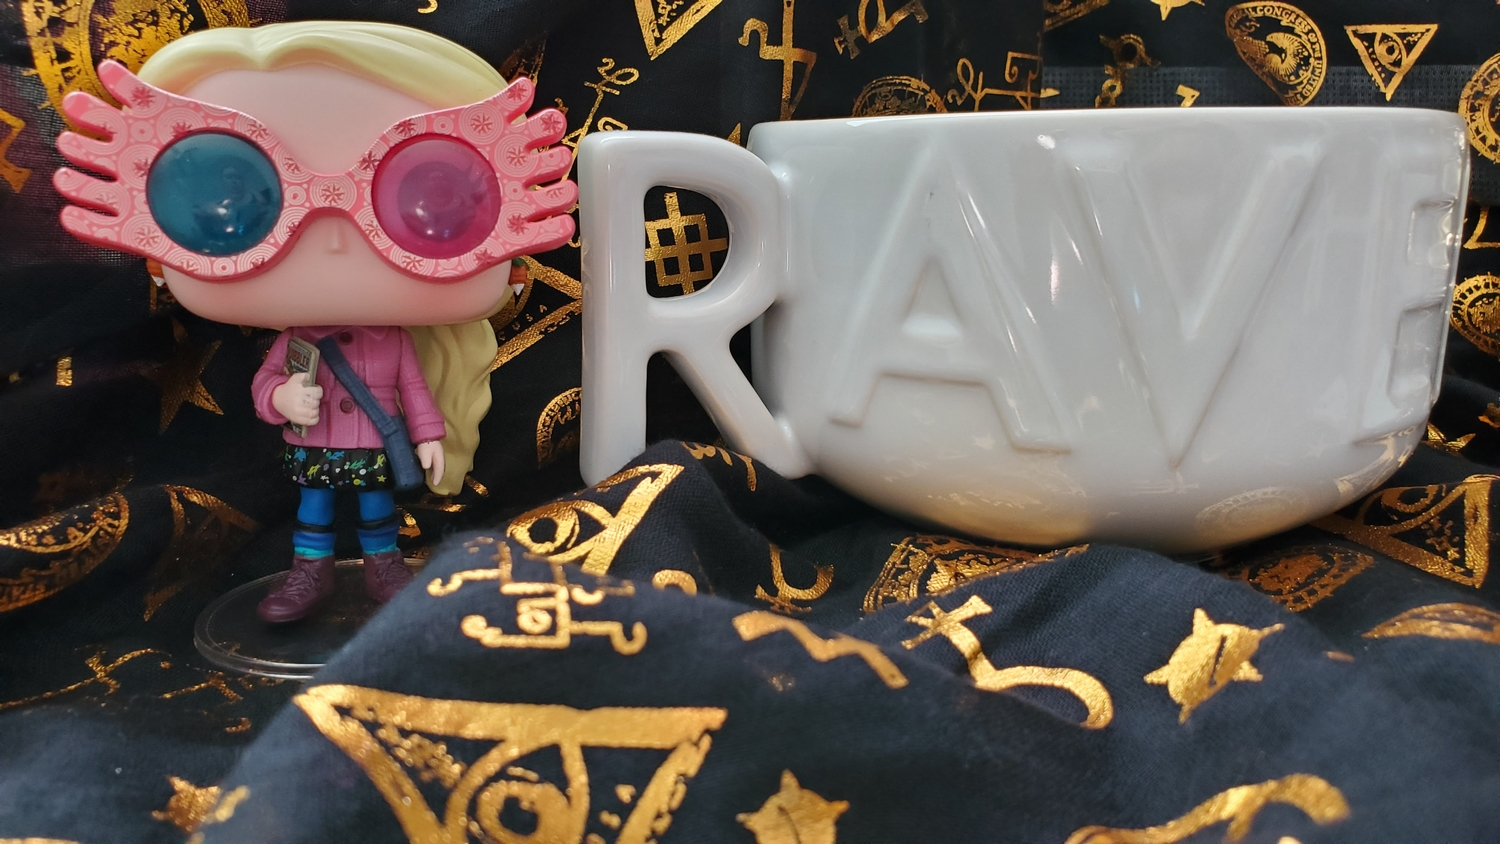 Harry Potter Soup Mug from Hallmark Gold Crown – Ravenclaw, front with Luna Lovegood Funko POP! in Spectrespecs